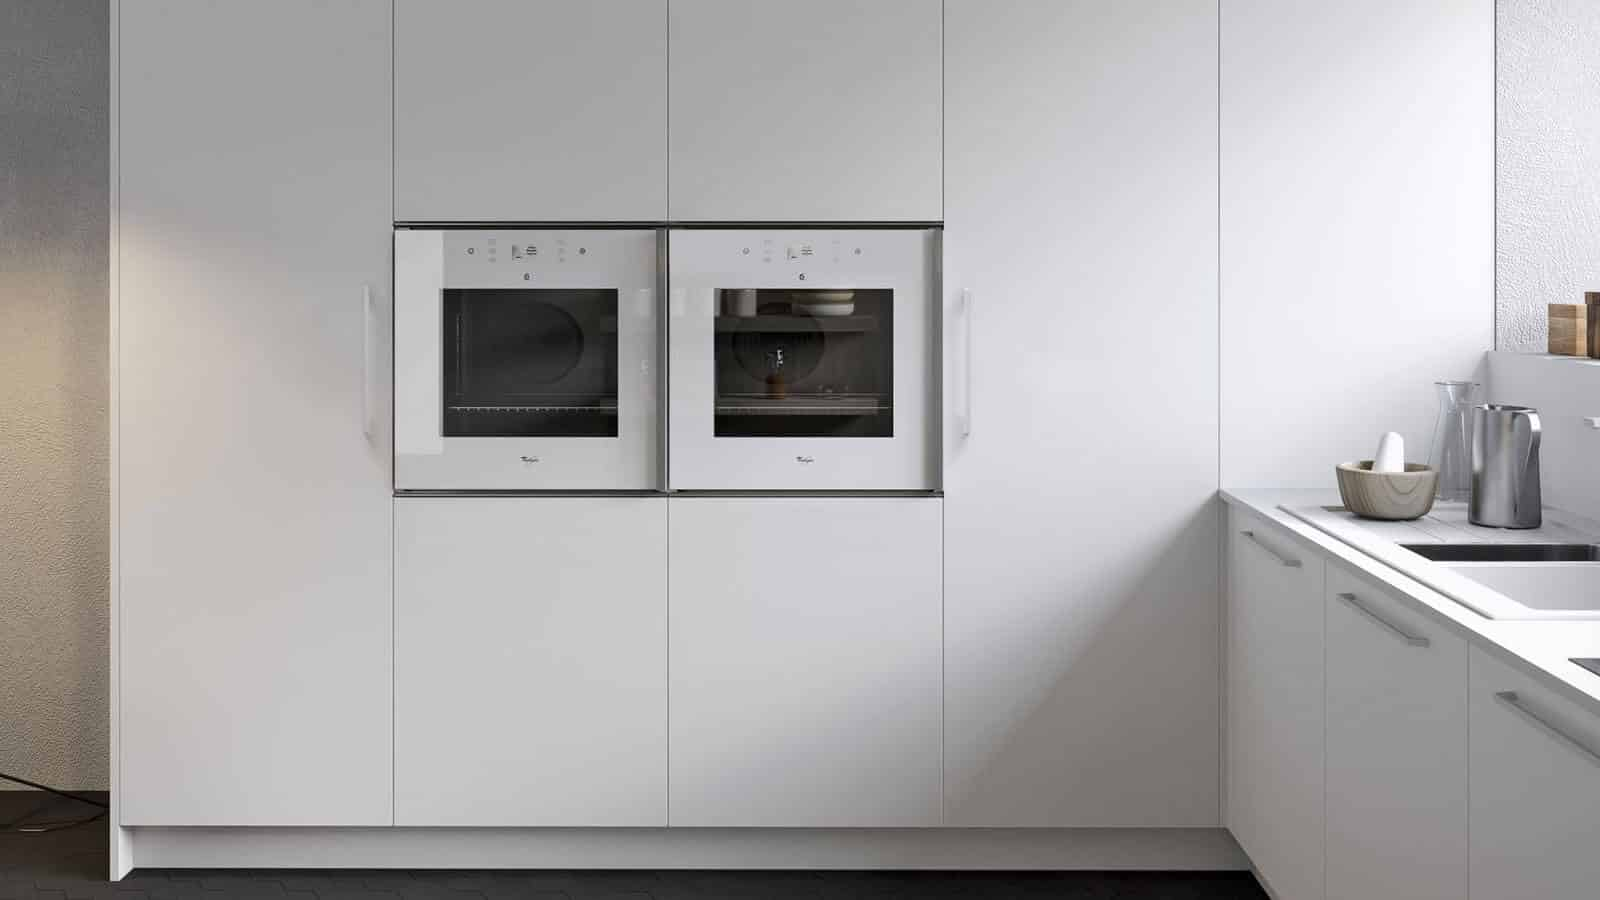 Remarquable Cuisine blanche | Fabrication Italienne | Optimal Annecy BY-16